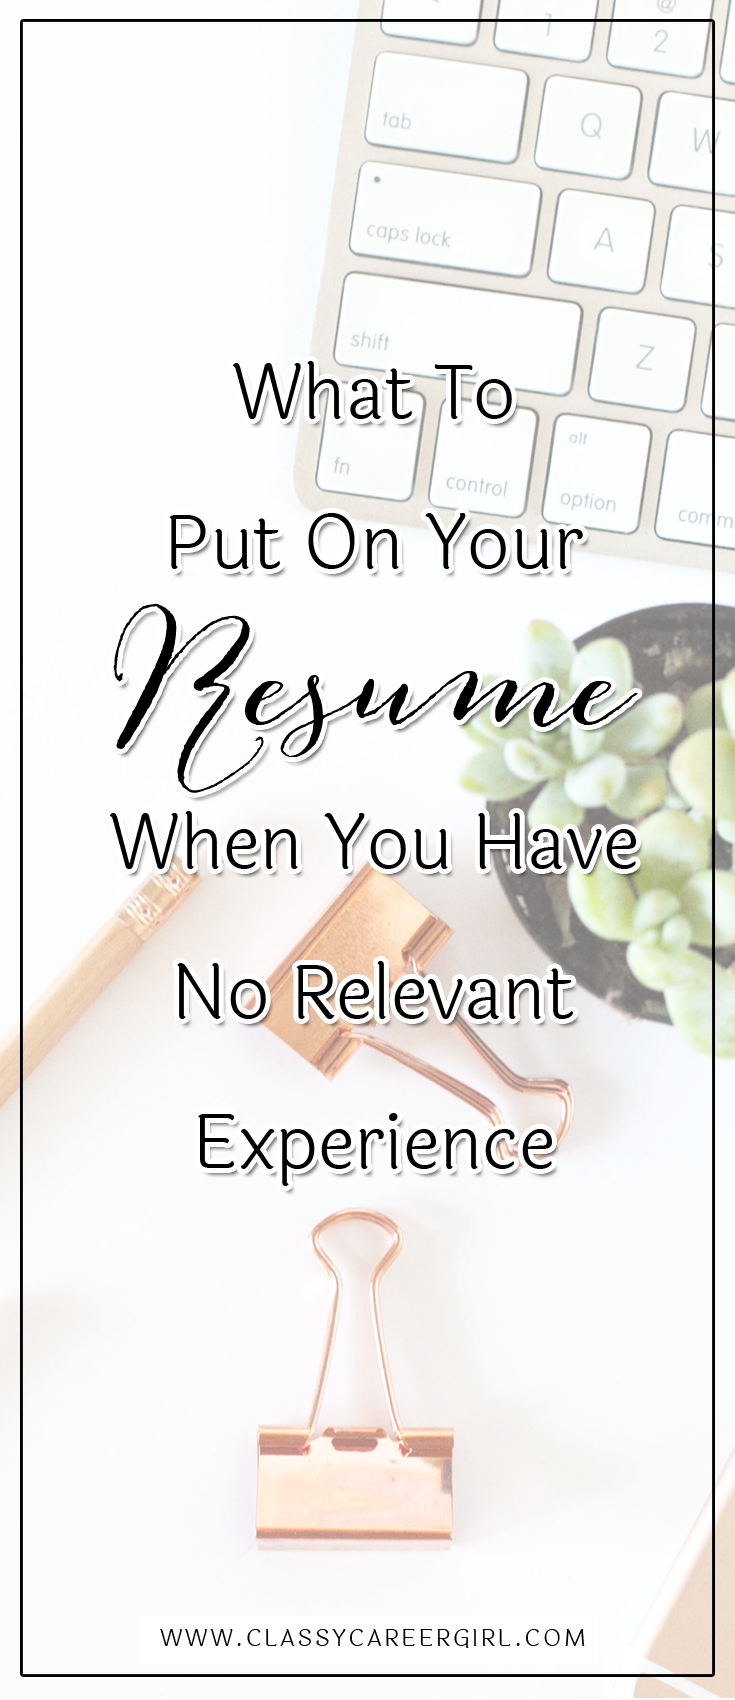 What To Put On Your Resume When You Have No Relevant Experience